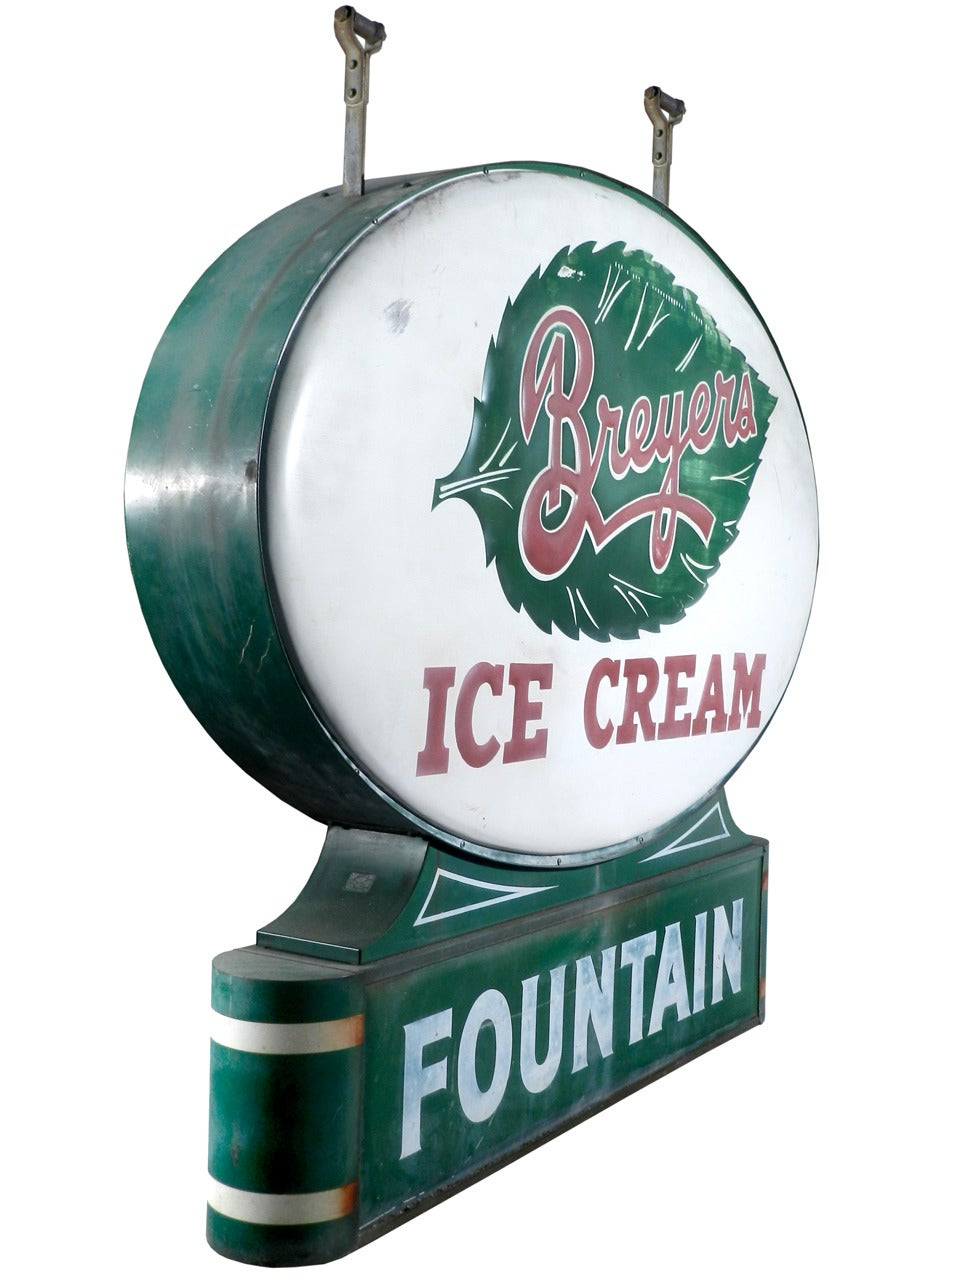 This is a die-cut and embossed sign for a Breyers ice cream fountain. Beautiful artwork and detail went into making this sign from the leaf to the base this sign is one of the more difficult porcelain signs to find. The tin sign is 5 foot wide and